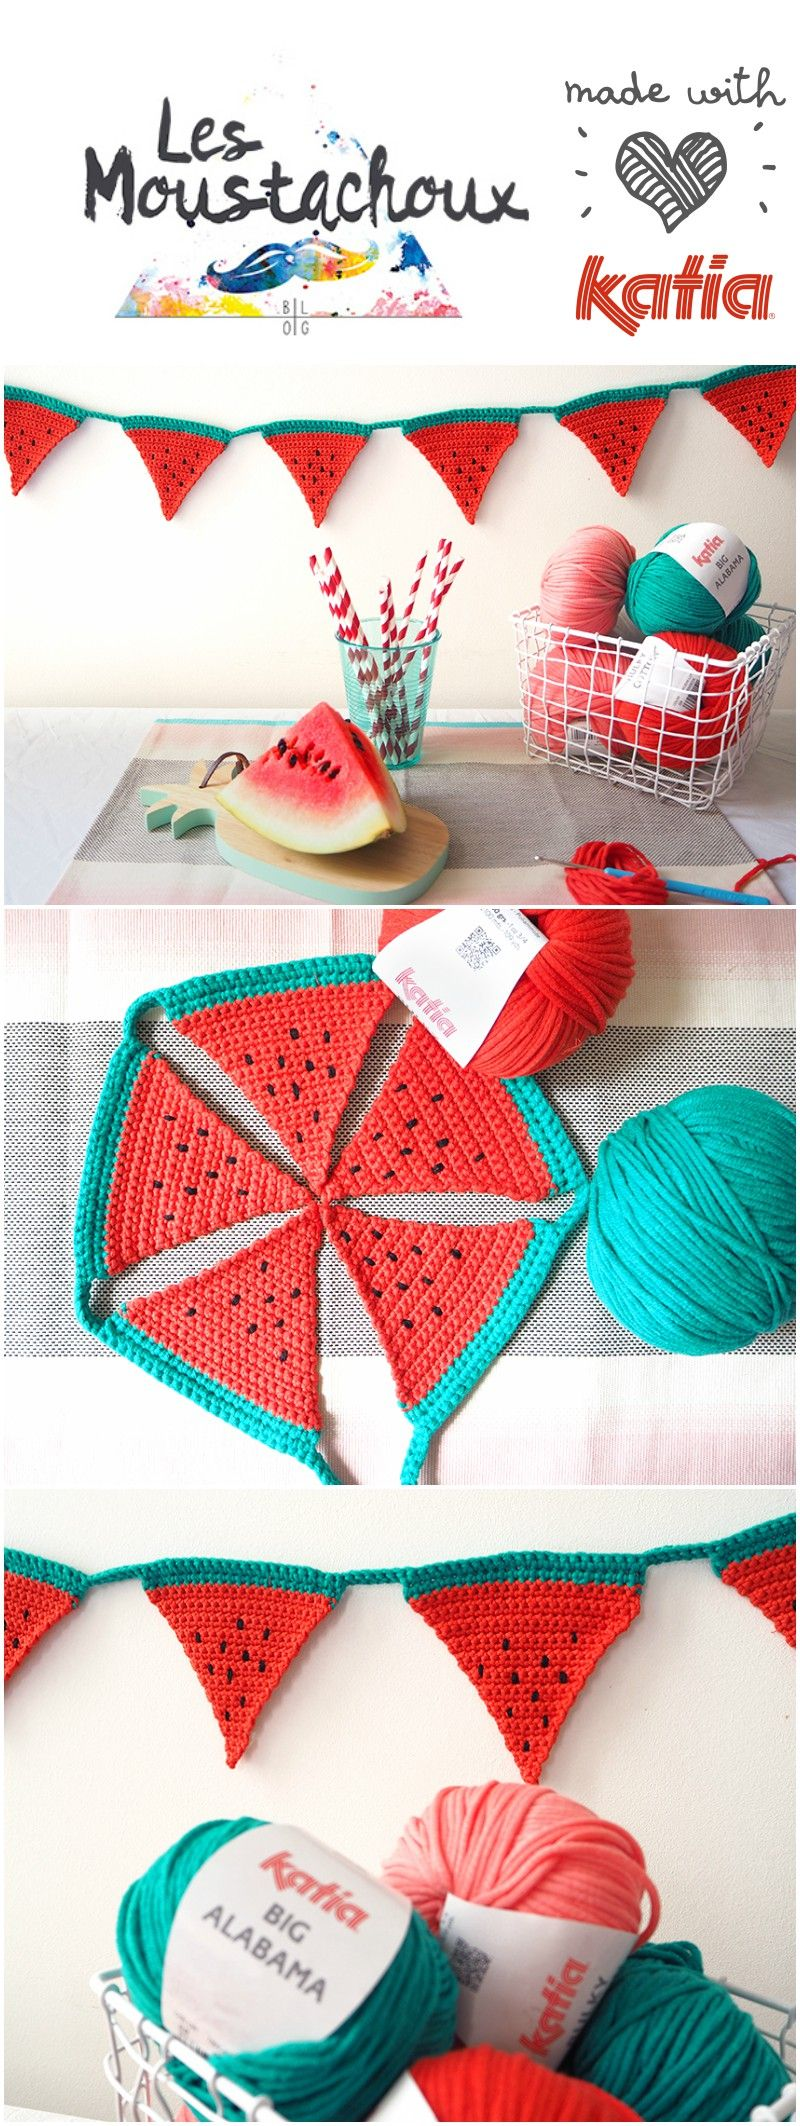 Craft lovers gehaakte slinger van watermeloenen door les anne sophie a passionate decoration and diy enthusiast has created for craft lovers using katia bulky cotton and big alabama a crochet watermelon bunting bankloansurffo Images